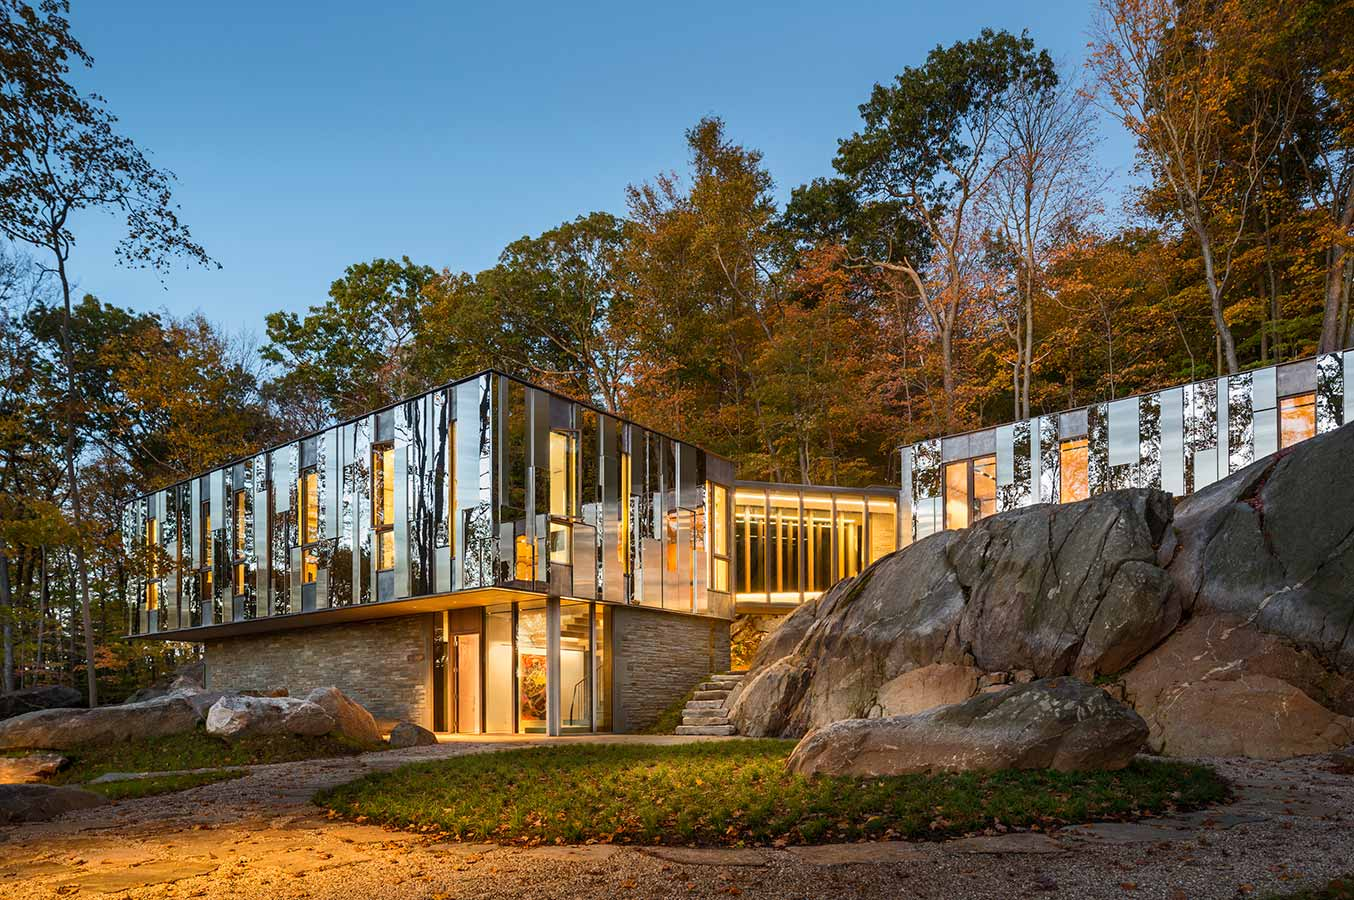 <p>At Pound Ridge House, most of the windows extend from floor to ceiling, parting the wall to reveal framed views to moments in the geology. The metal rain screen wall panels, in turn, reveal their own abstractions of the landscape. <br><small>&copy; Peter Aaron/OTTO</small></p>